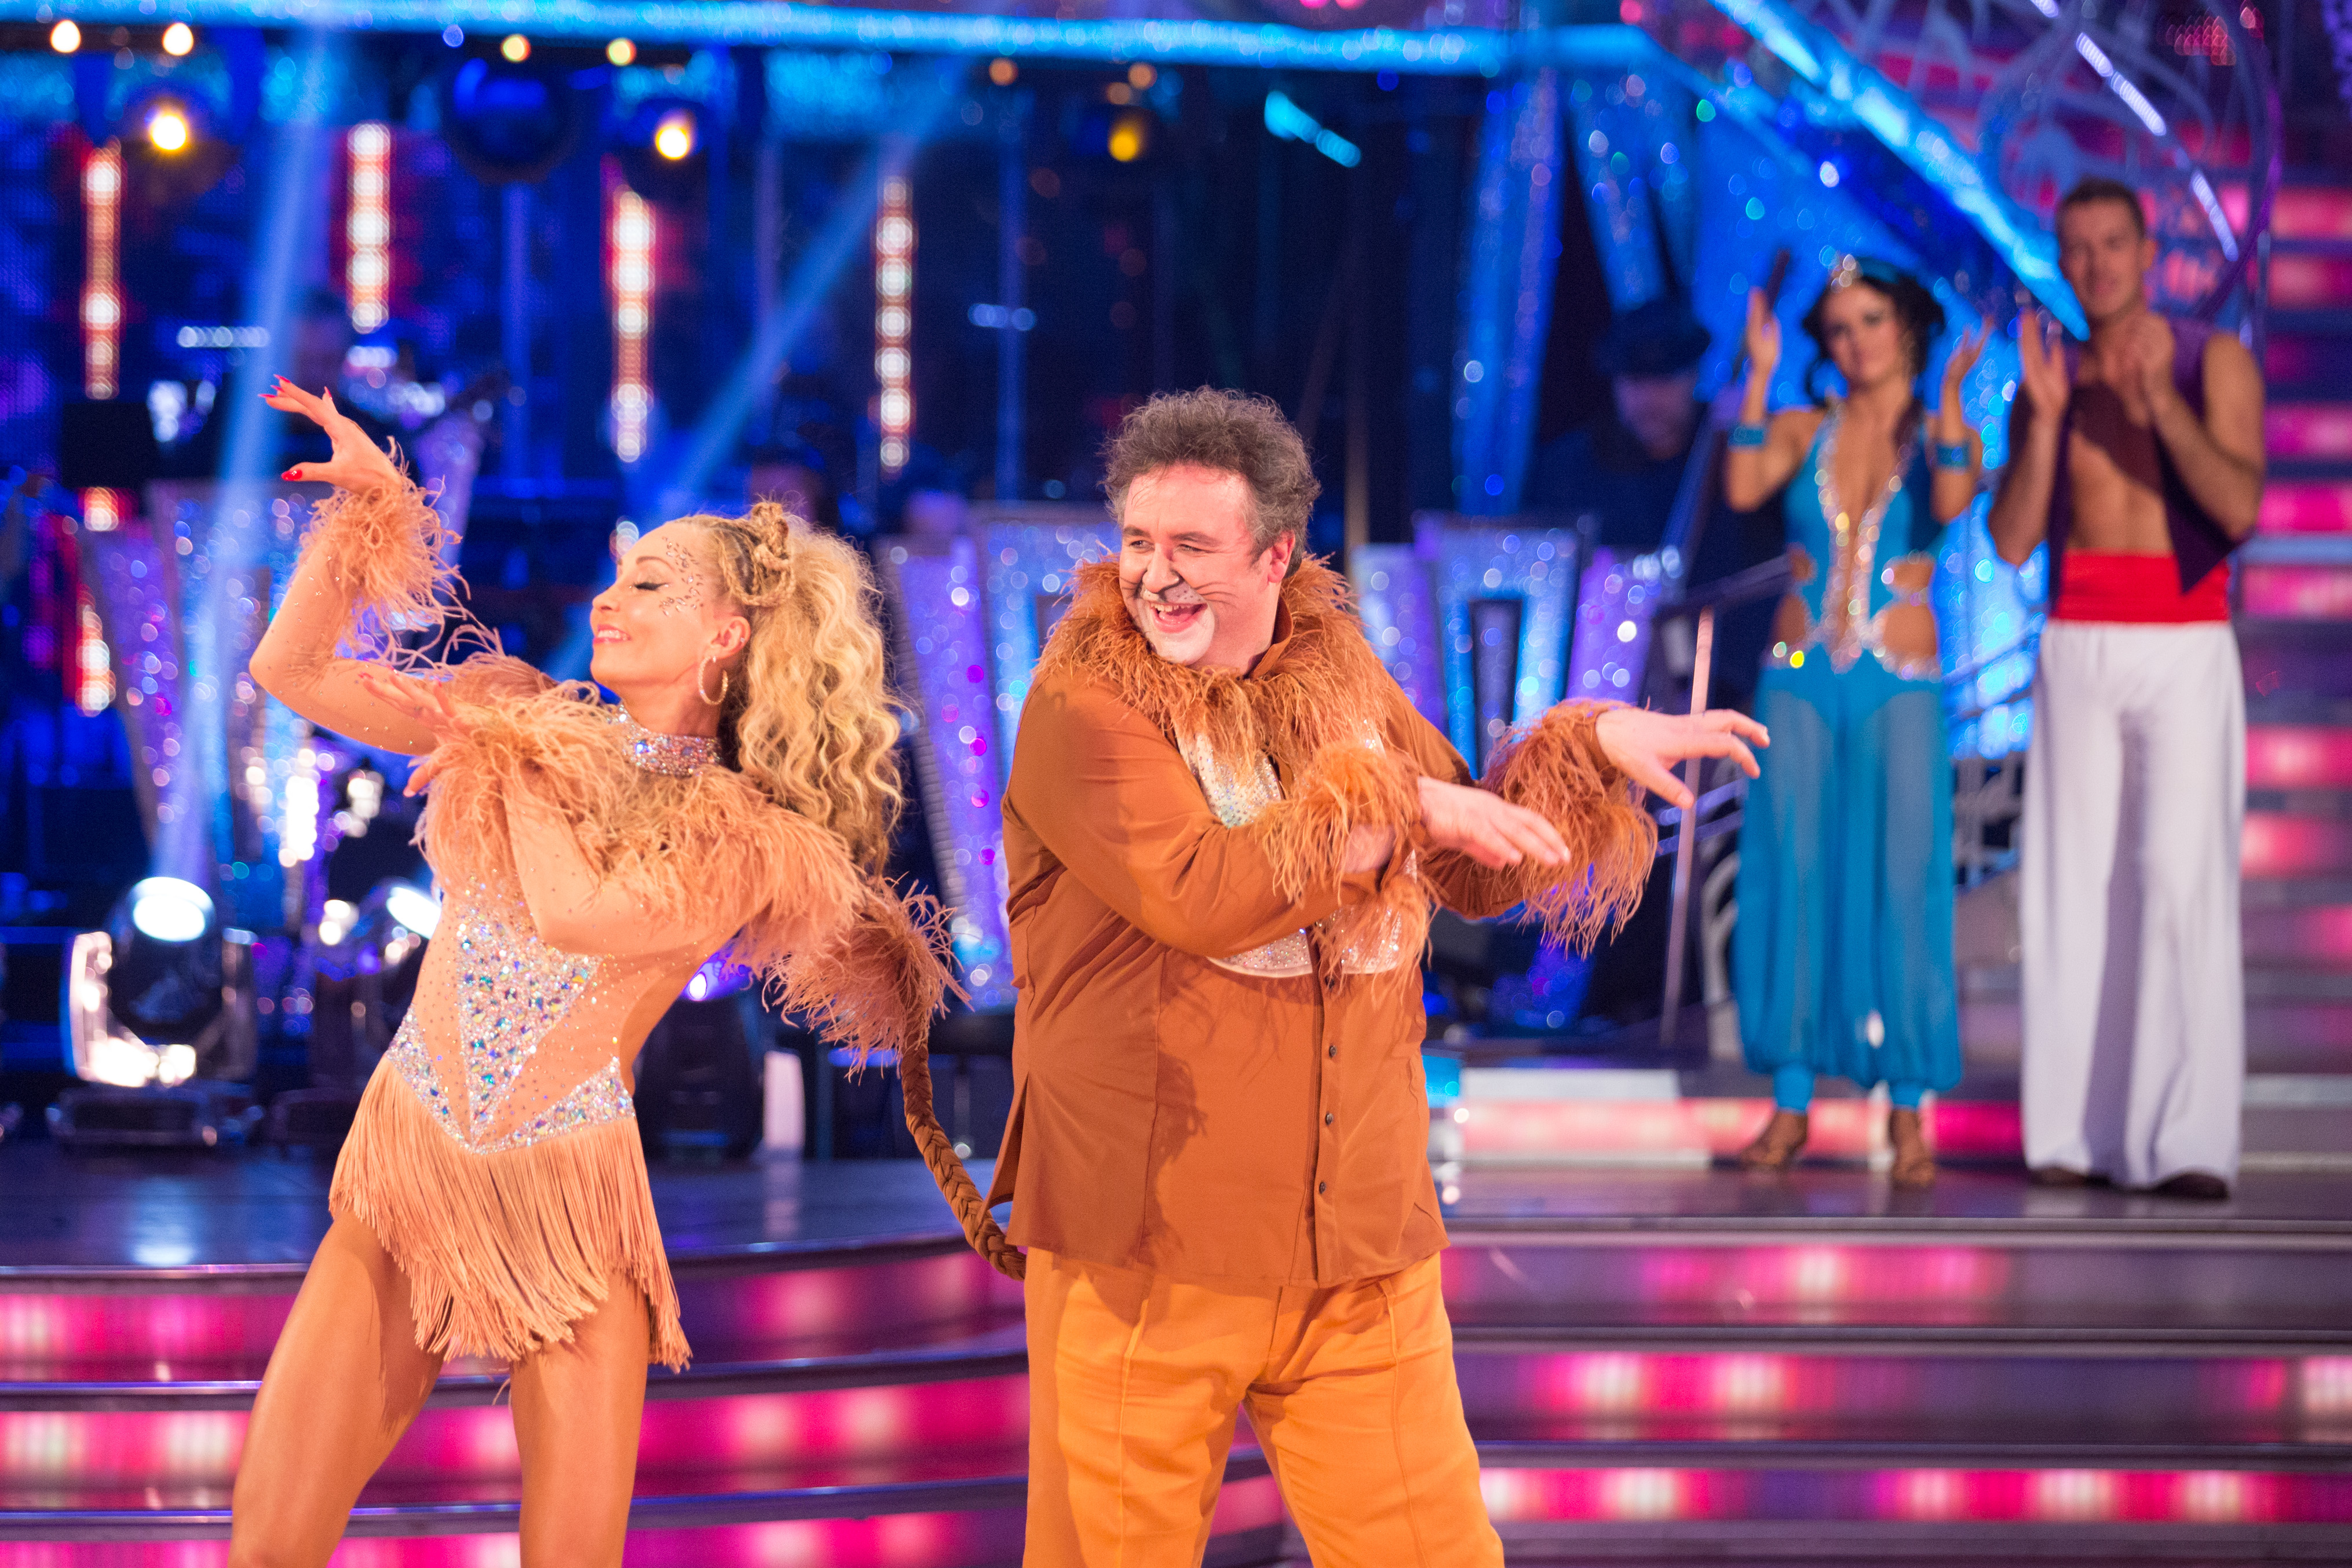 Strictly Come Dancing 2013, Sunday's results show – no surprises as Mark Benton leaves